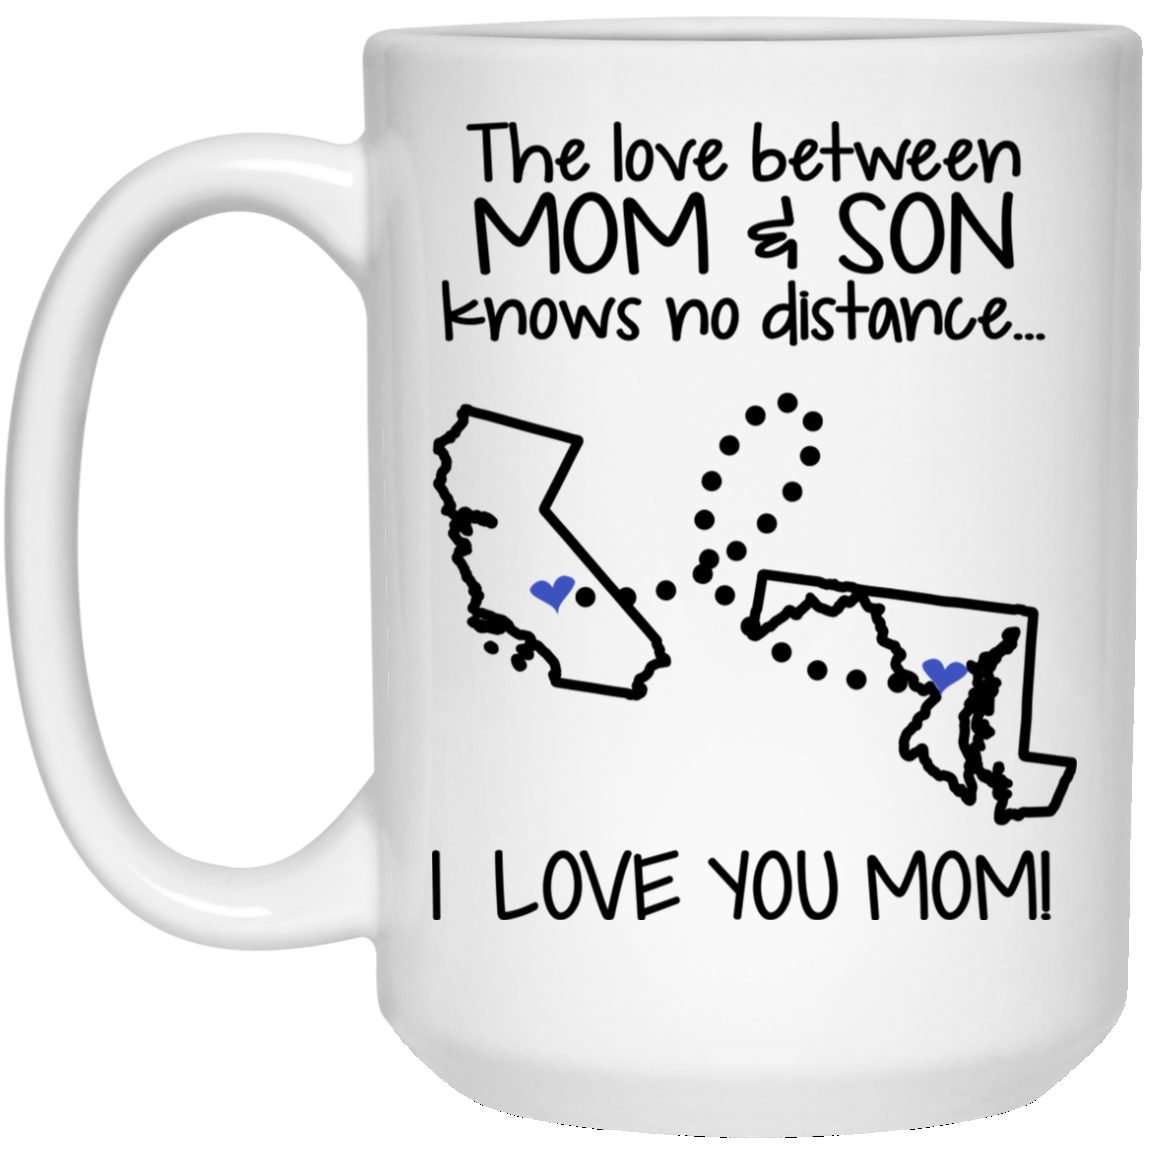 MARYLAND CALIFORNIA THE LOVE BETWEEN MOM AND SON